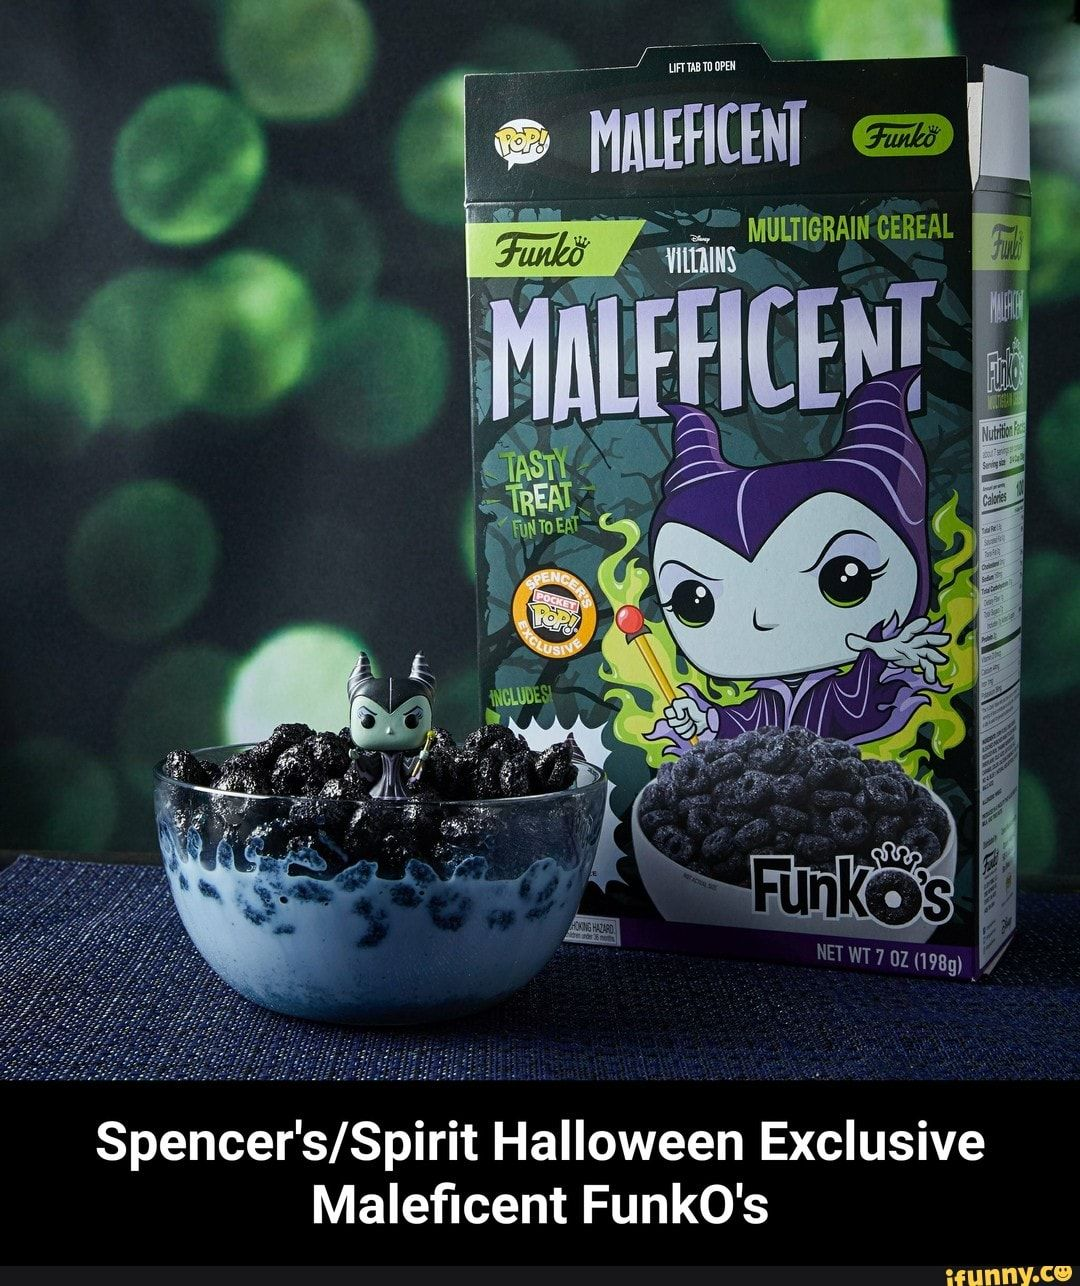 Spencer's/Spirit Halloween Exclusive Maleficent FunkO's